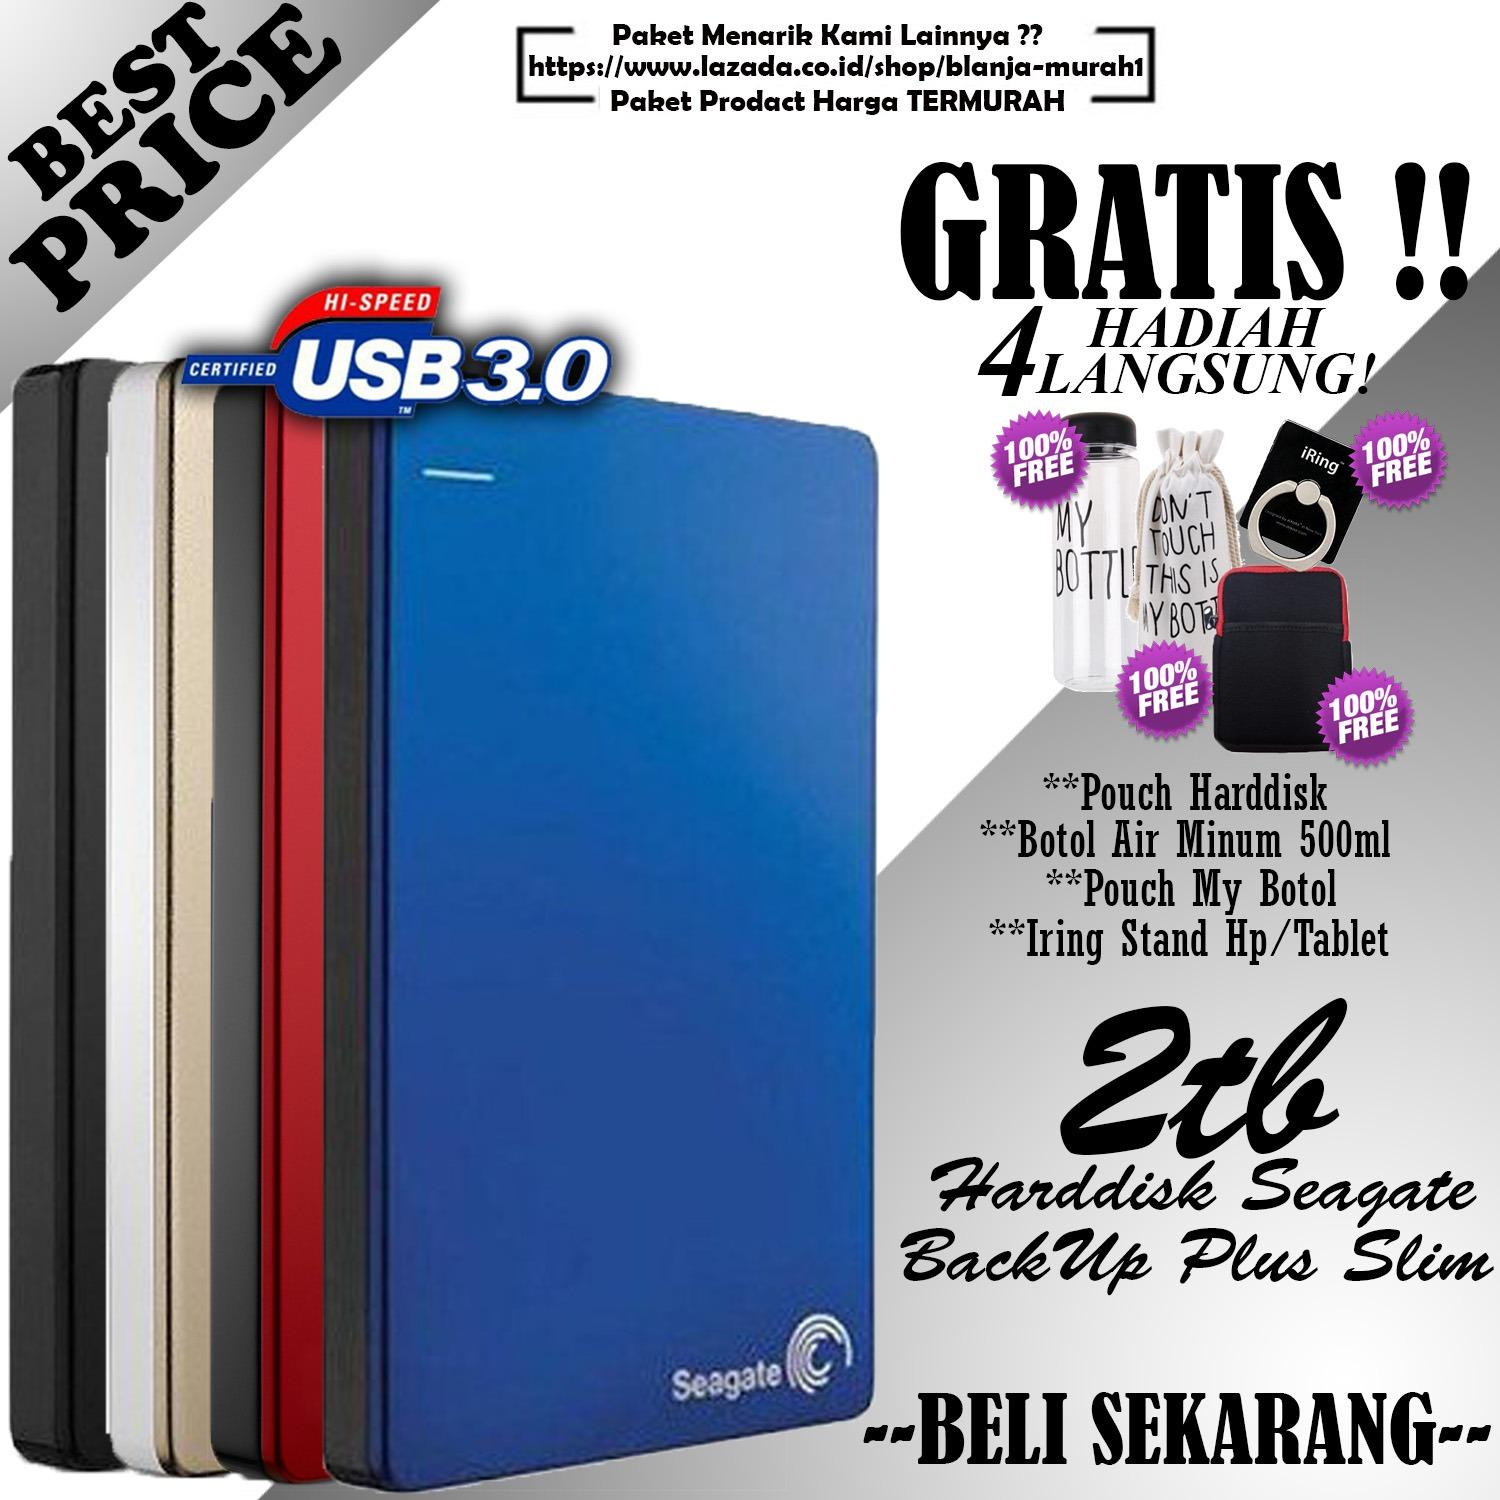 Harga Seagate Backup Plus Slim 2Tb Hdd Hd Hardisk External 2 5 Gratis Pouch Harddisk Ext My Botol Air Minum 500Ml Sarung Pouch My Bottle Iring Stand Hp Tablet Seagate Terbaik